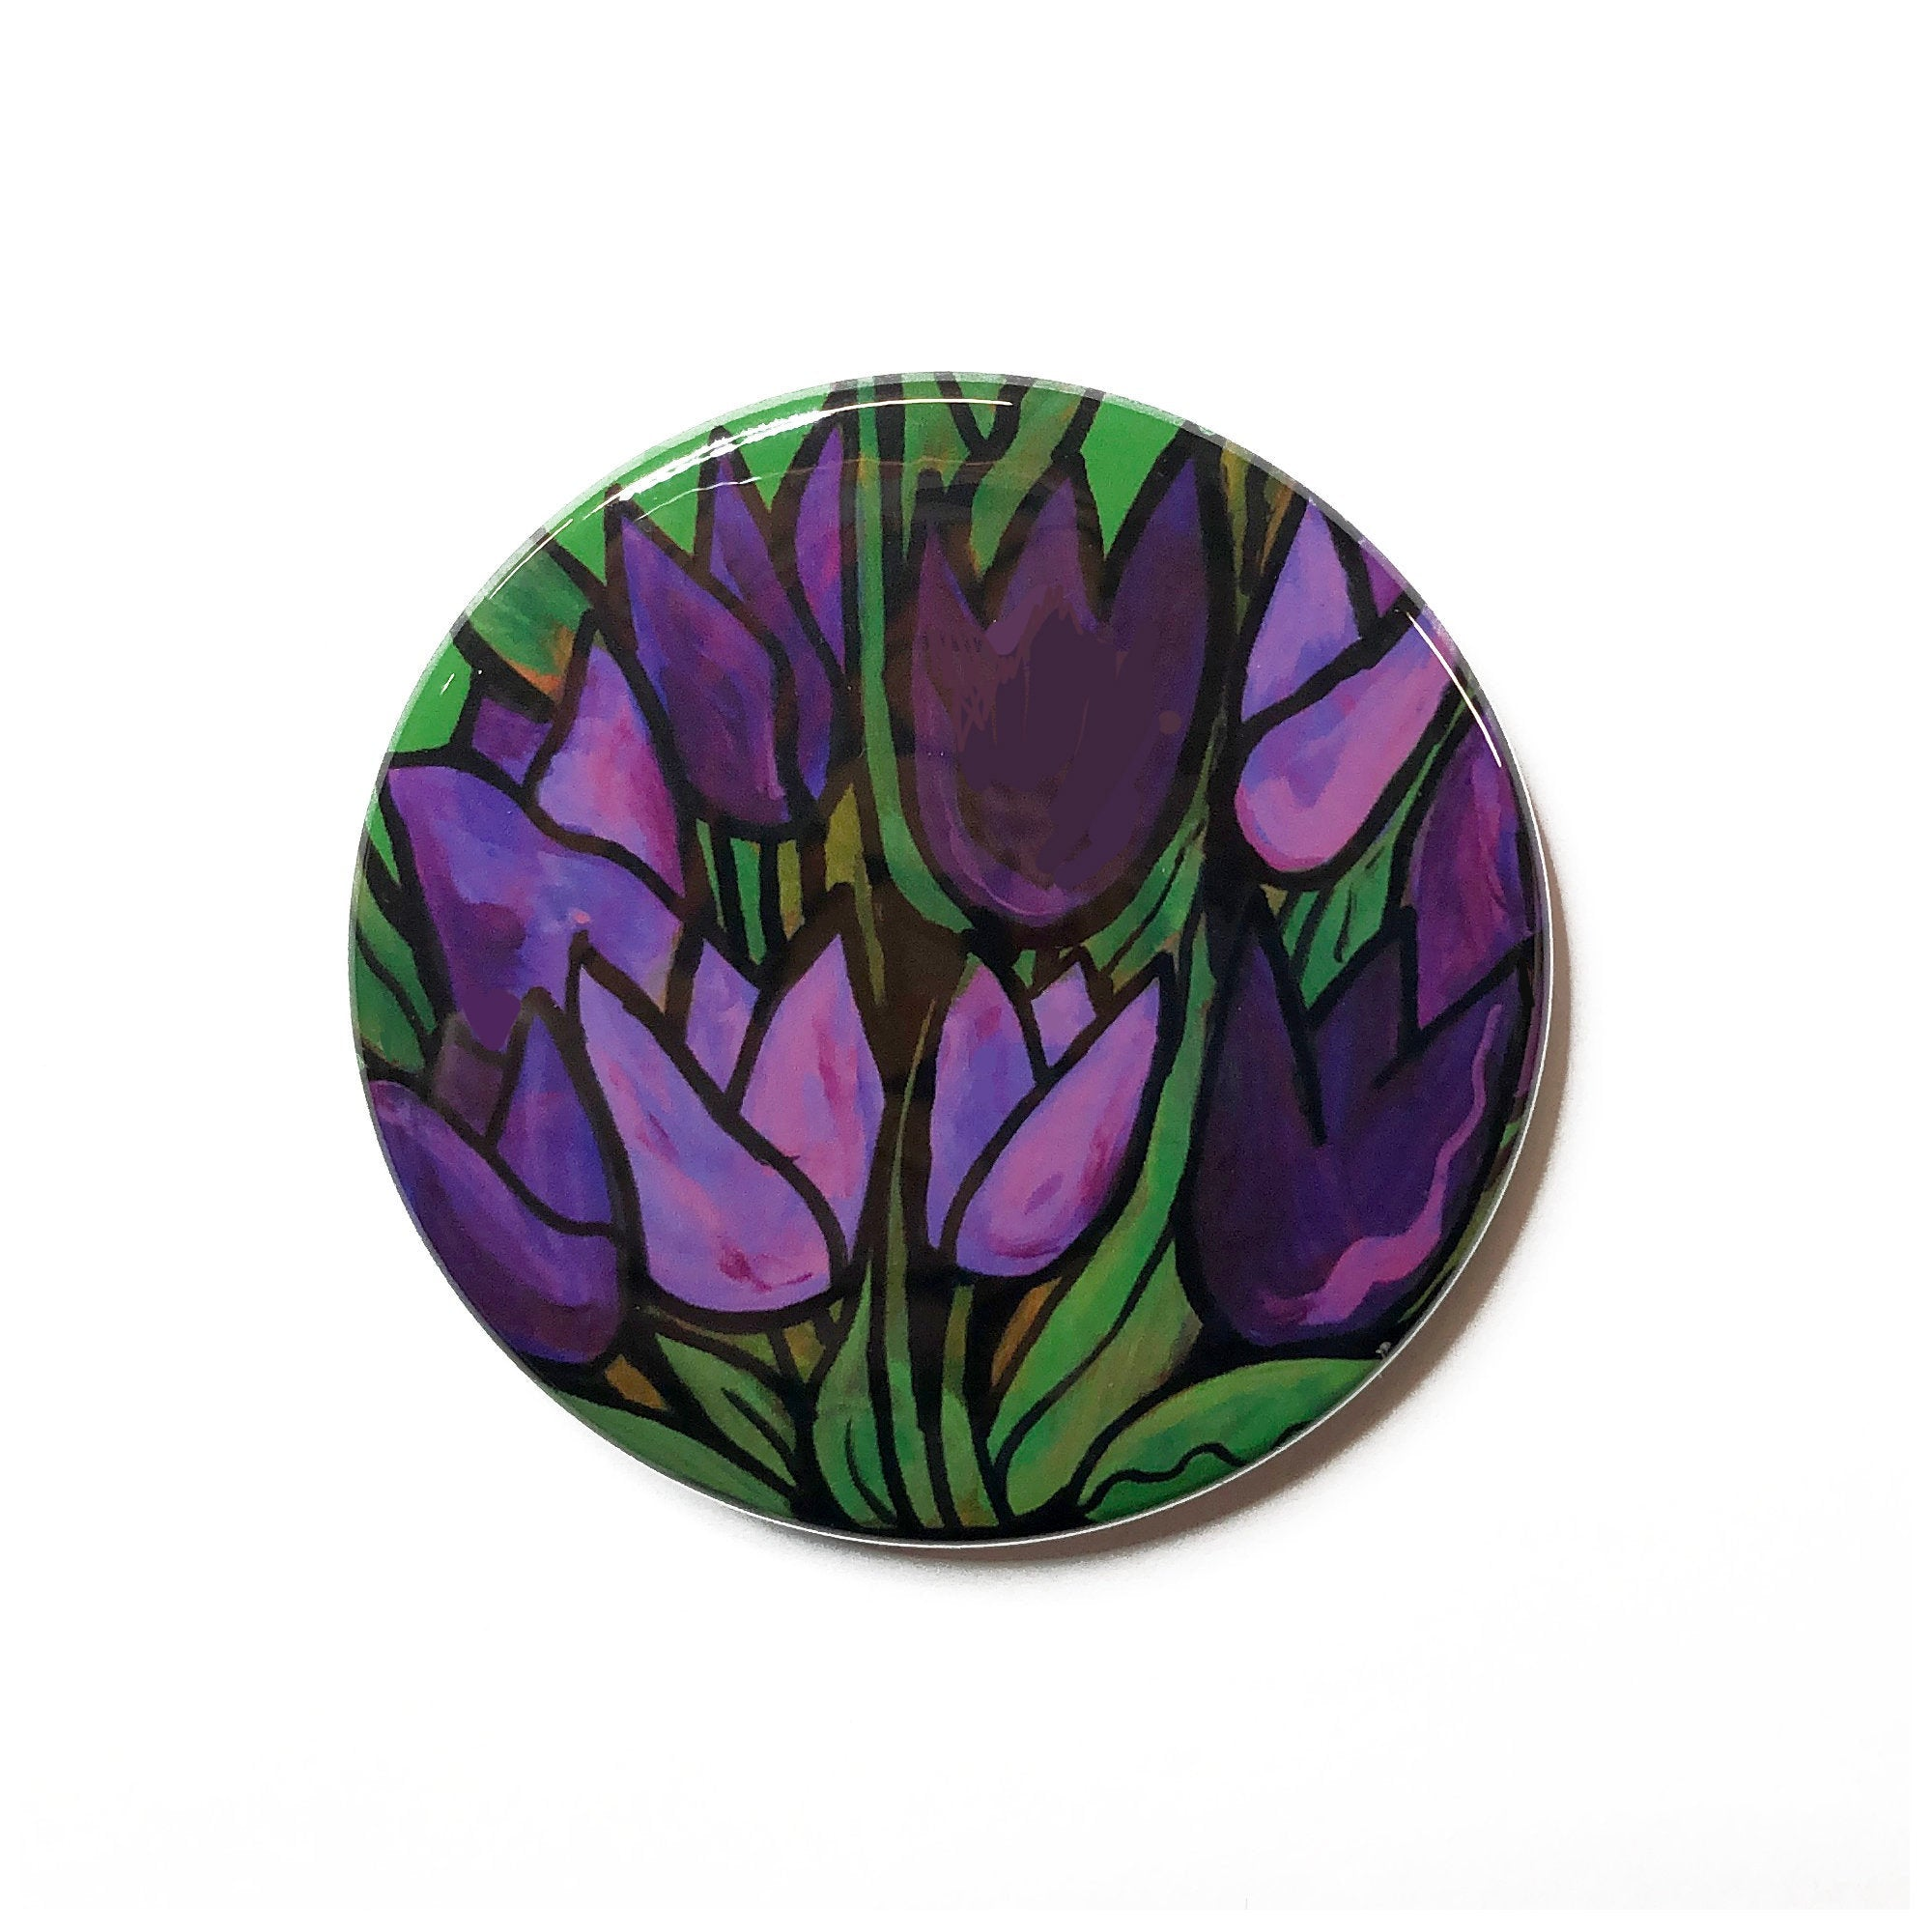 Purple Tulip Magnet, Pin Back Button, or Pocket Mirror  - Flower Magnet for Fridge, Locker, or Board or Flower Pinback or Purse Mirror